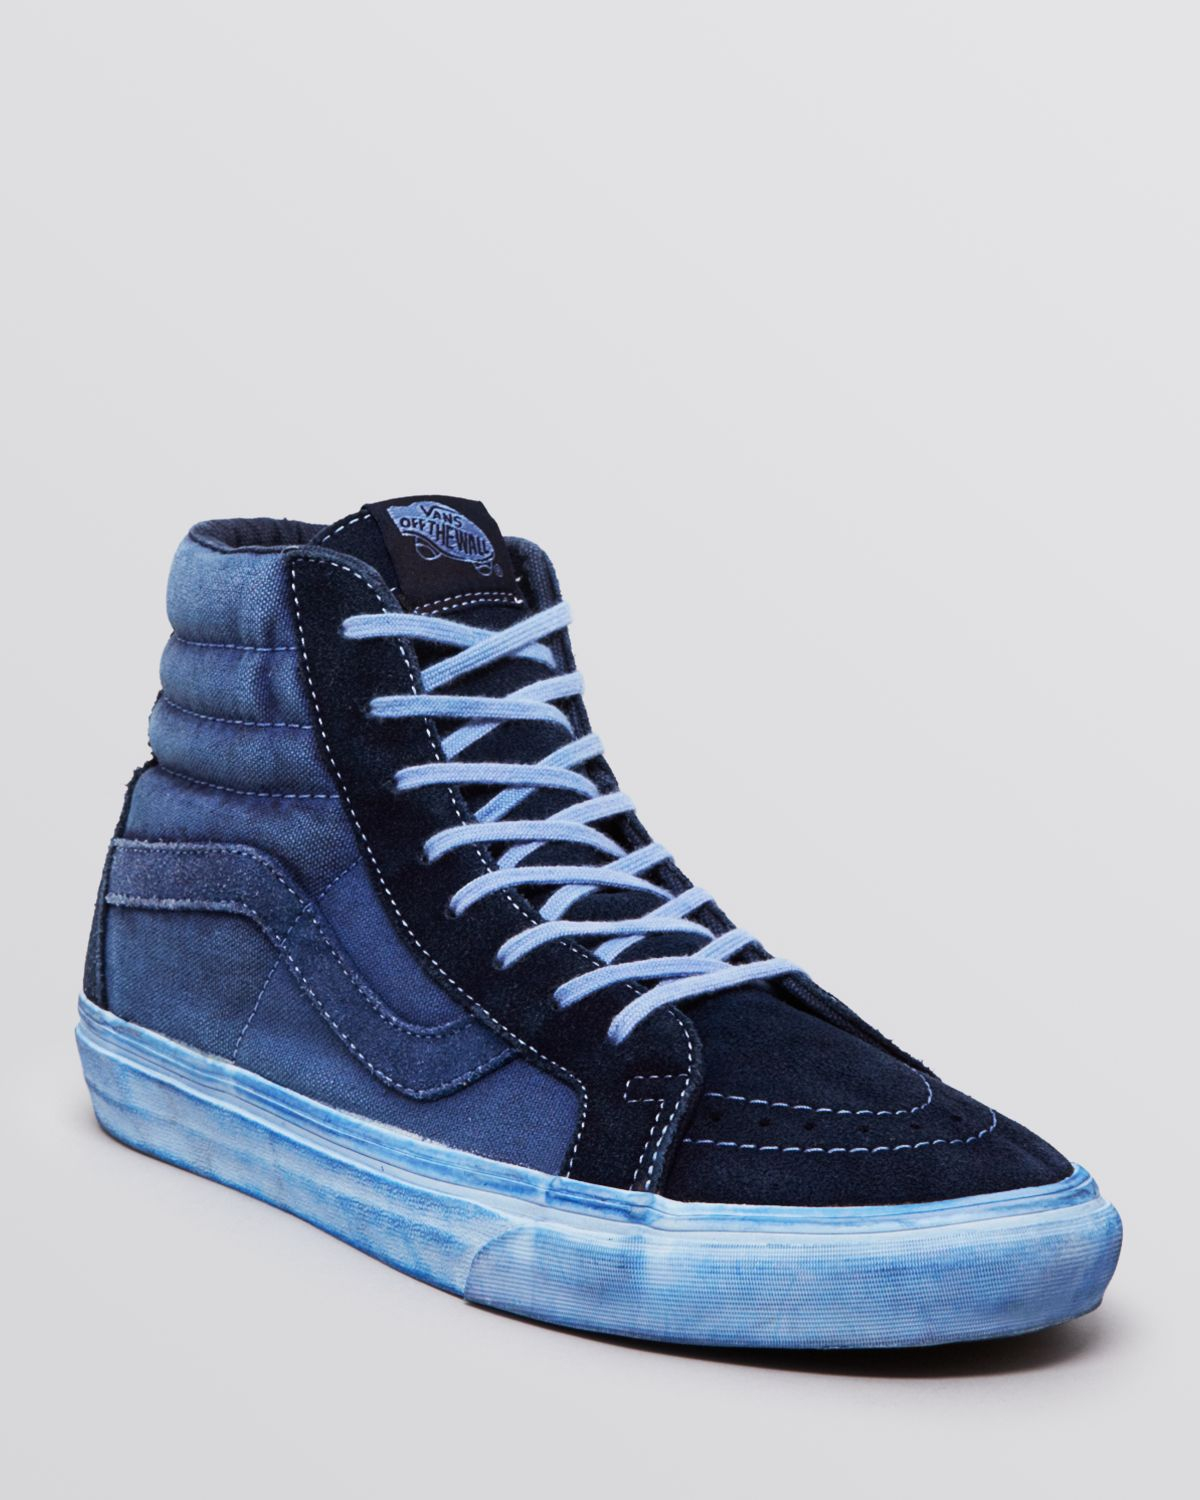 e41f99e483 Lyst - Vans Sk8 High Top Reissue Ca Sneakers in Blue for Men